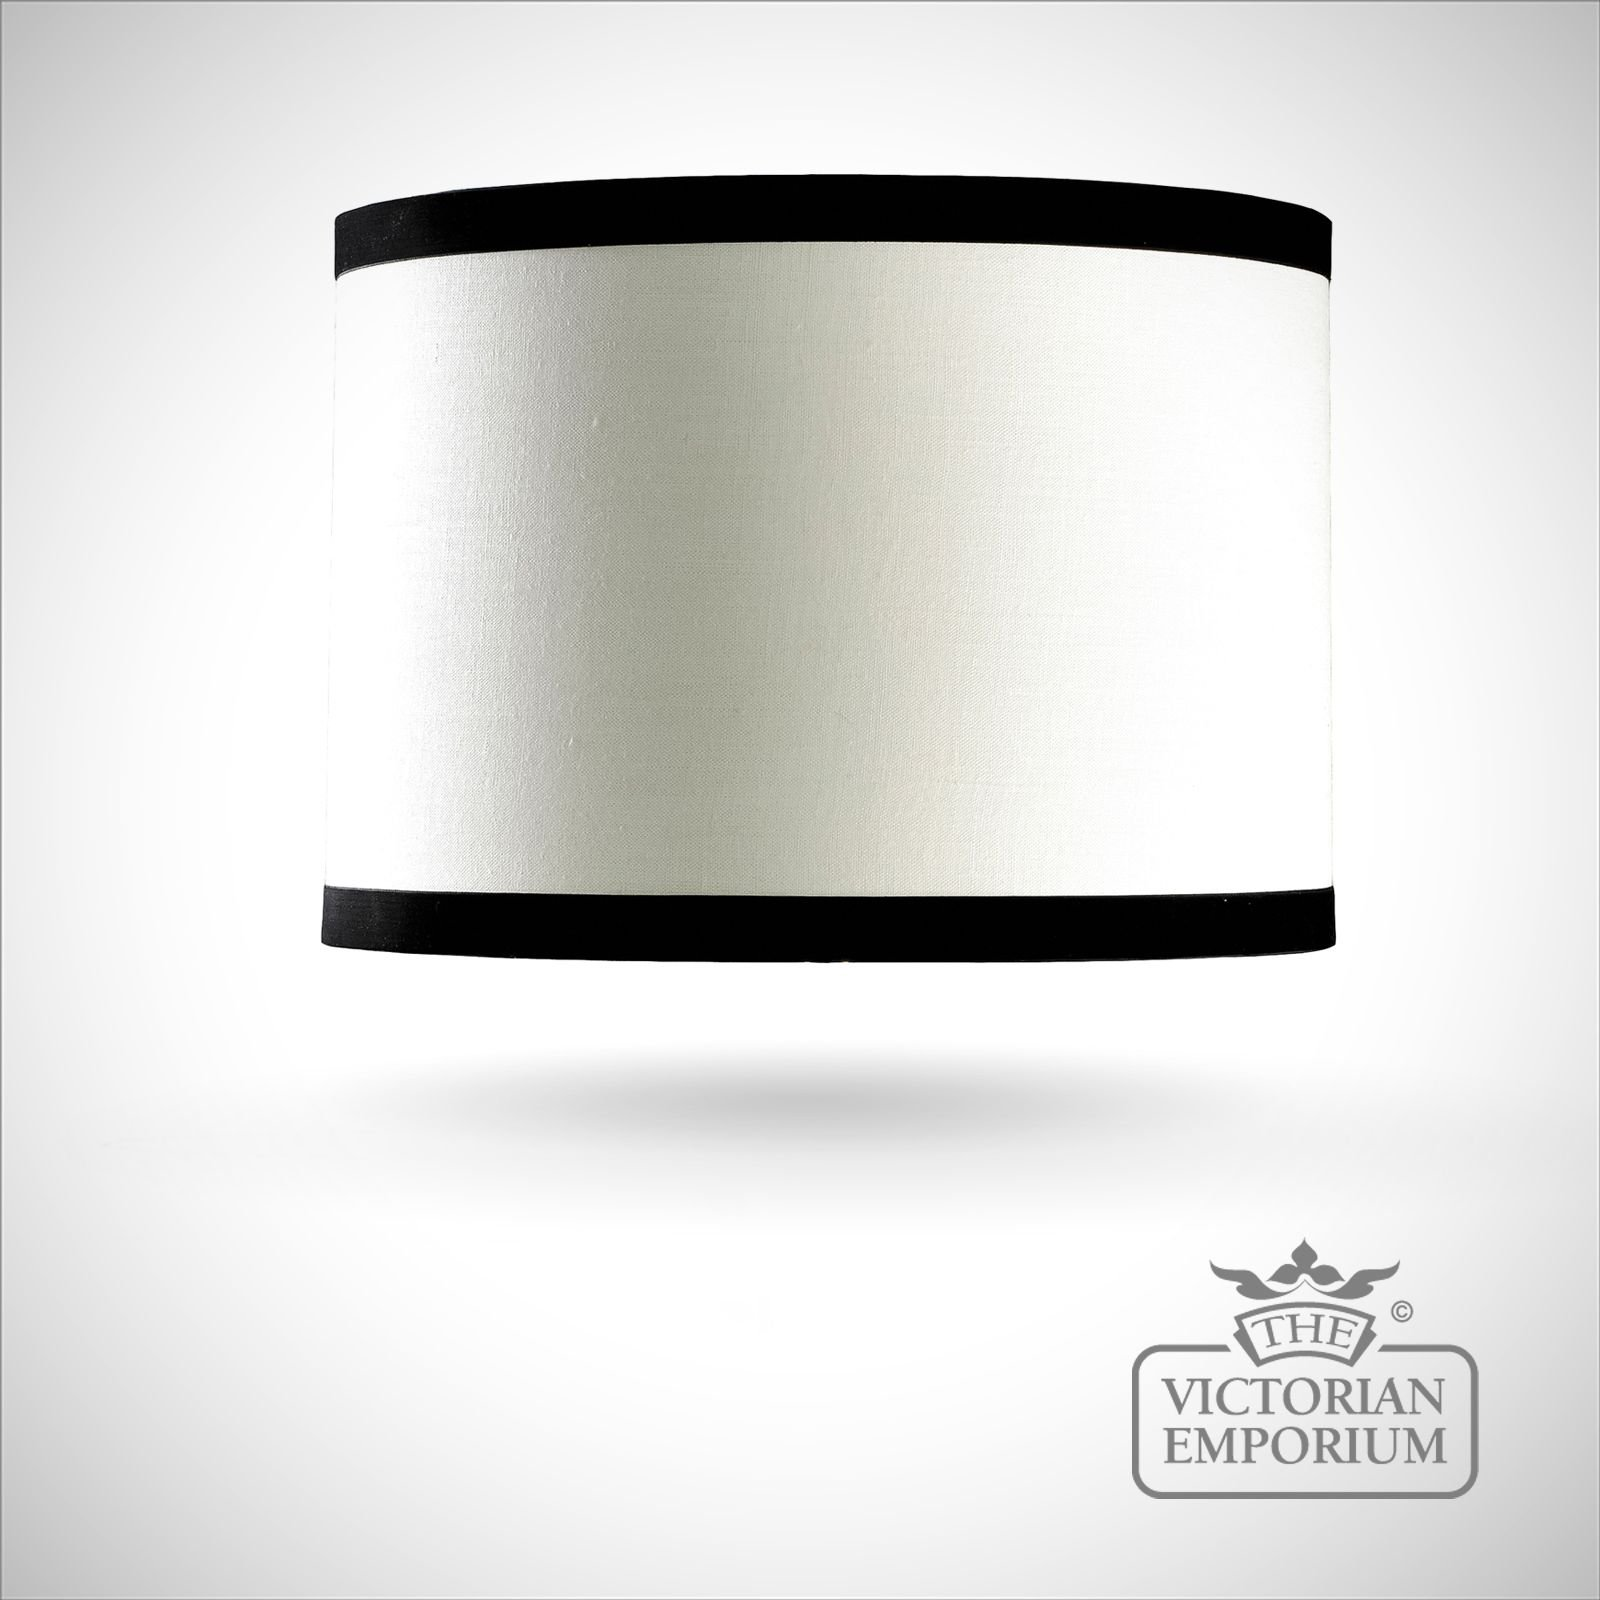 Cylinder Shade In Off White And Black 36cm Lamp Shades